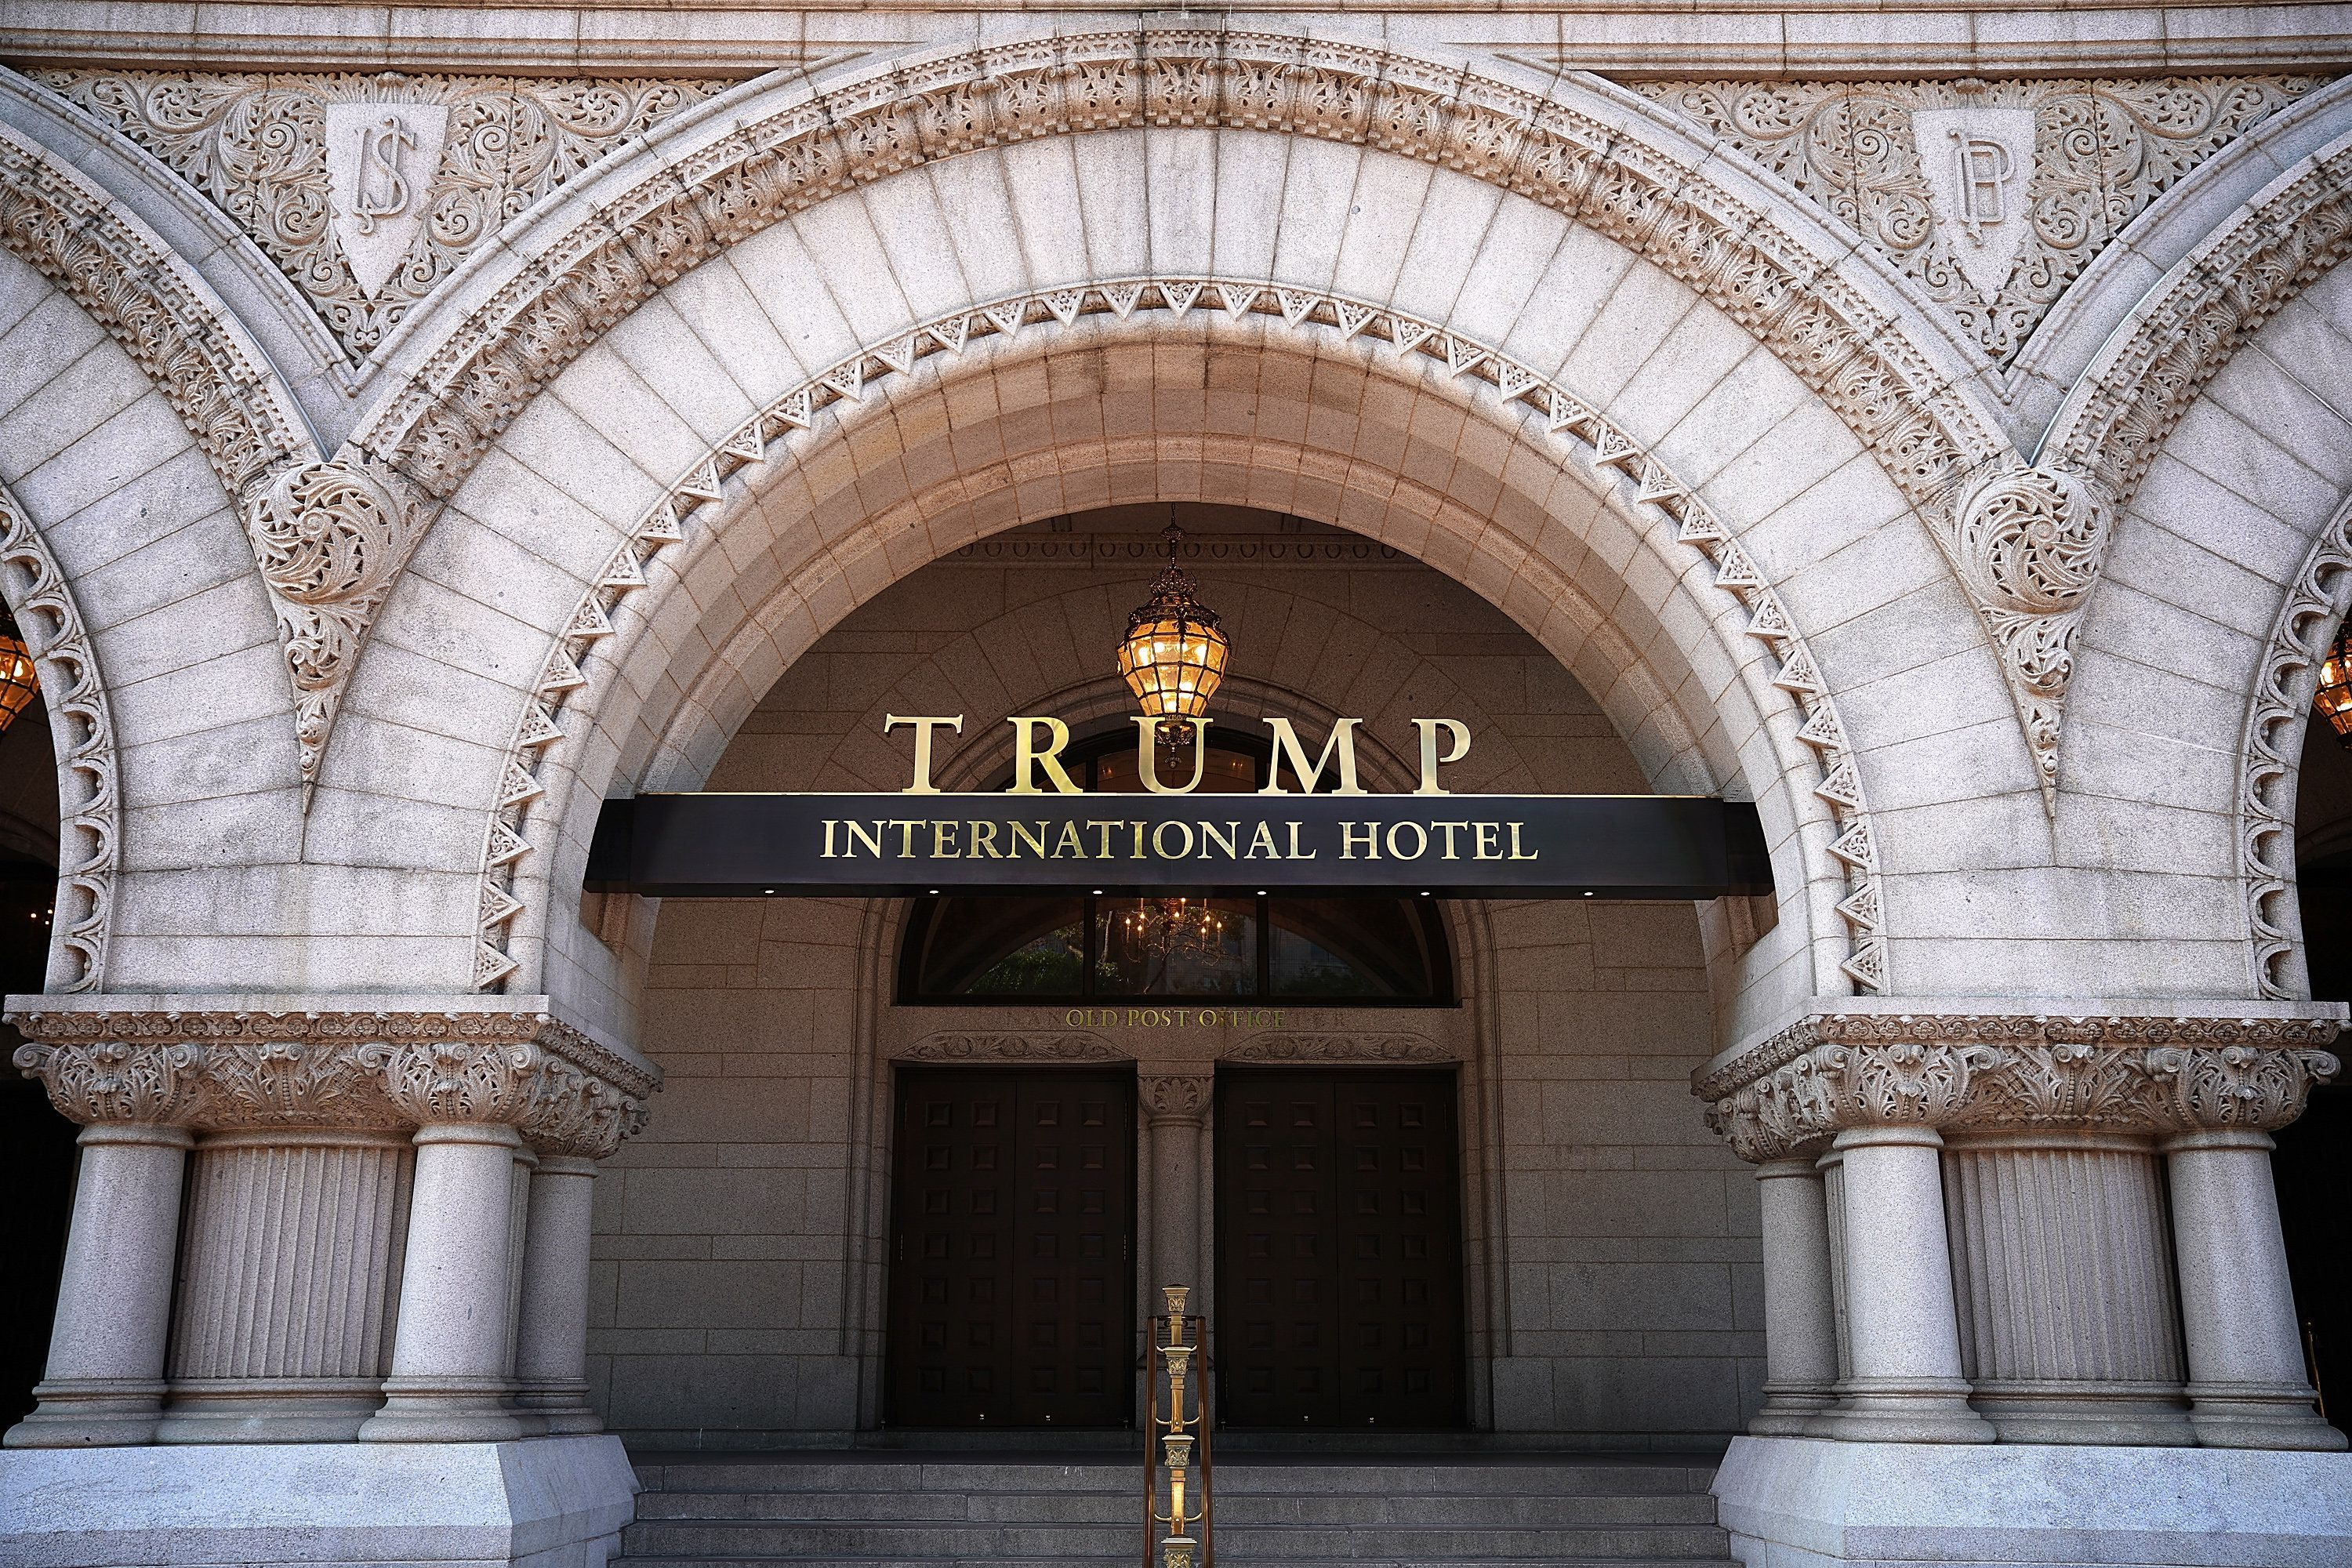 The Trump International Hotel, locatedblocks from the White House, has become both a tourist attraction in the nation's